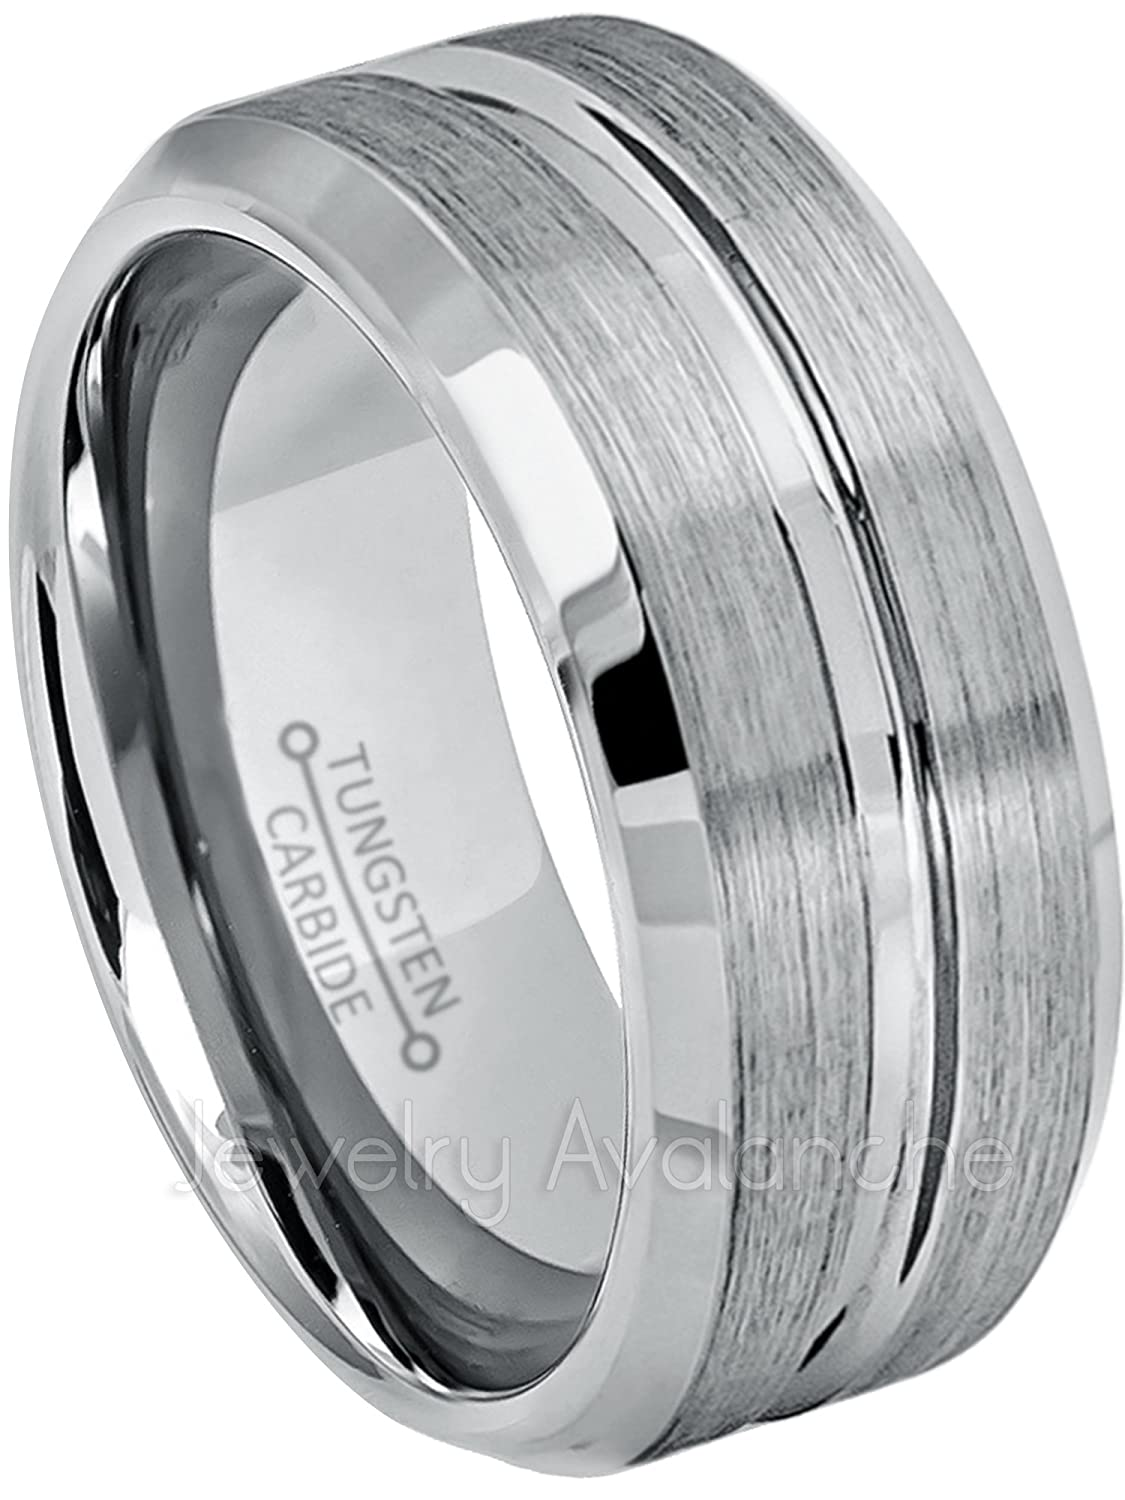 futurepost.co.nz Jewelry Fashion Tungsten Carbide Grooved Ring ...